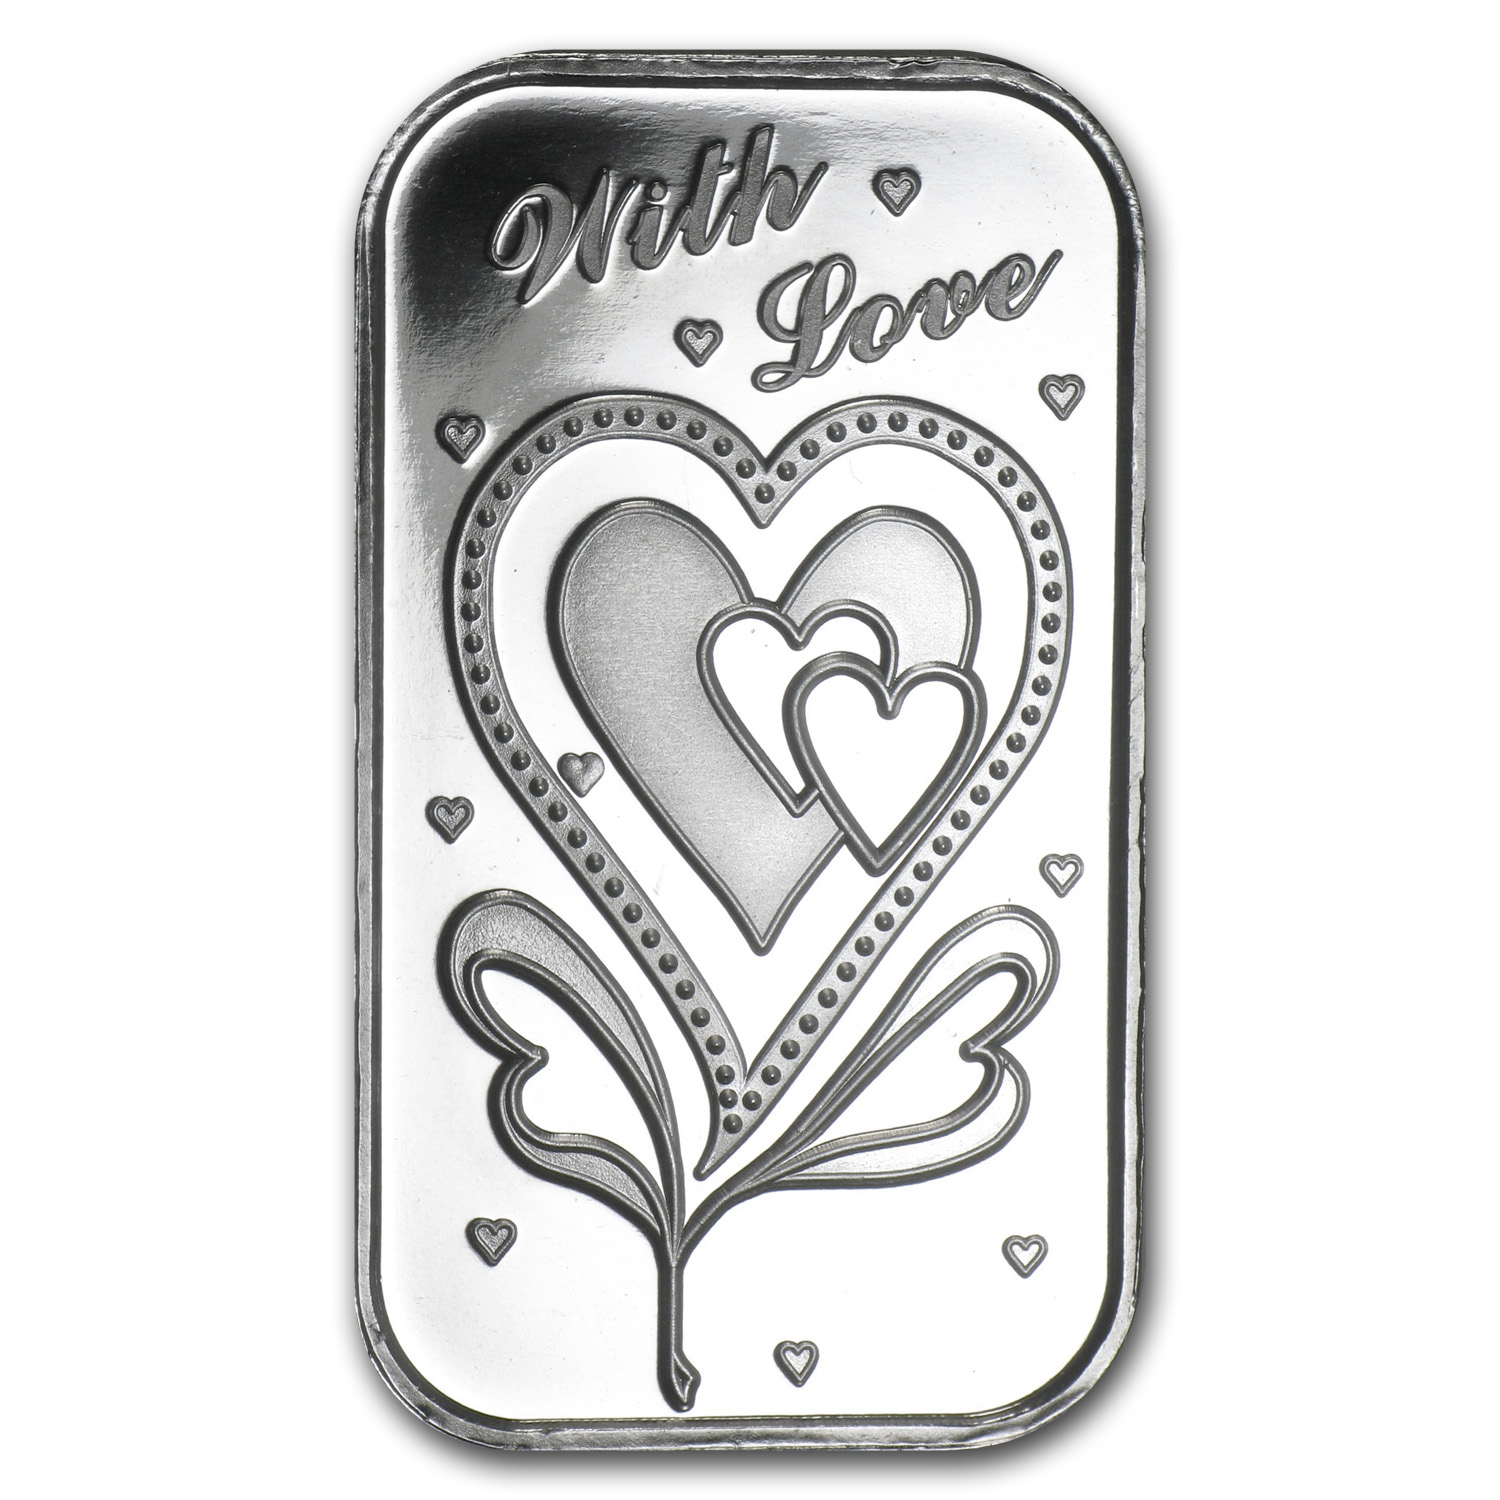 1 oz Silver Bar - With Love